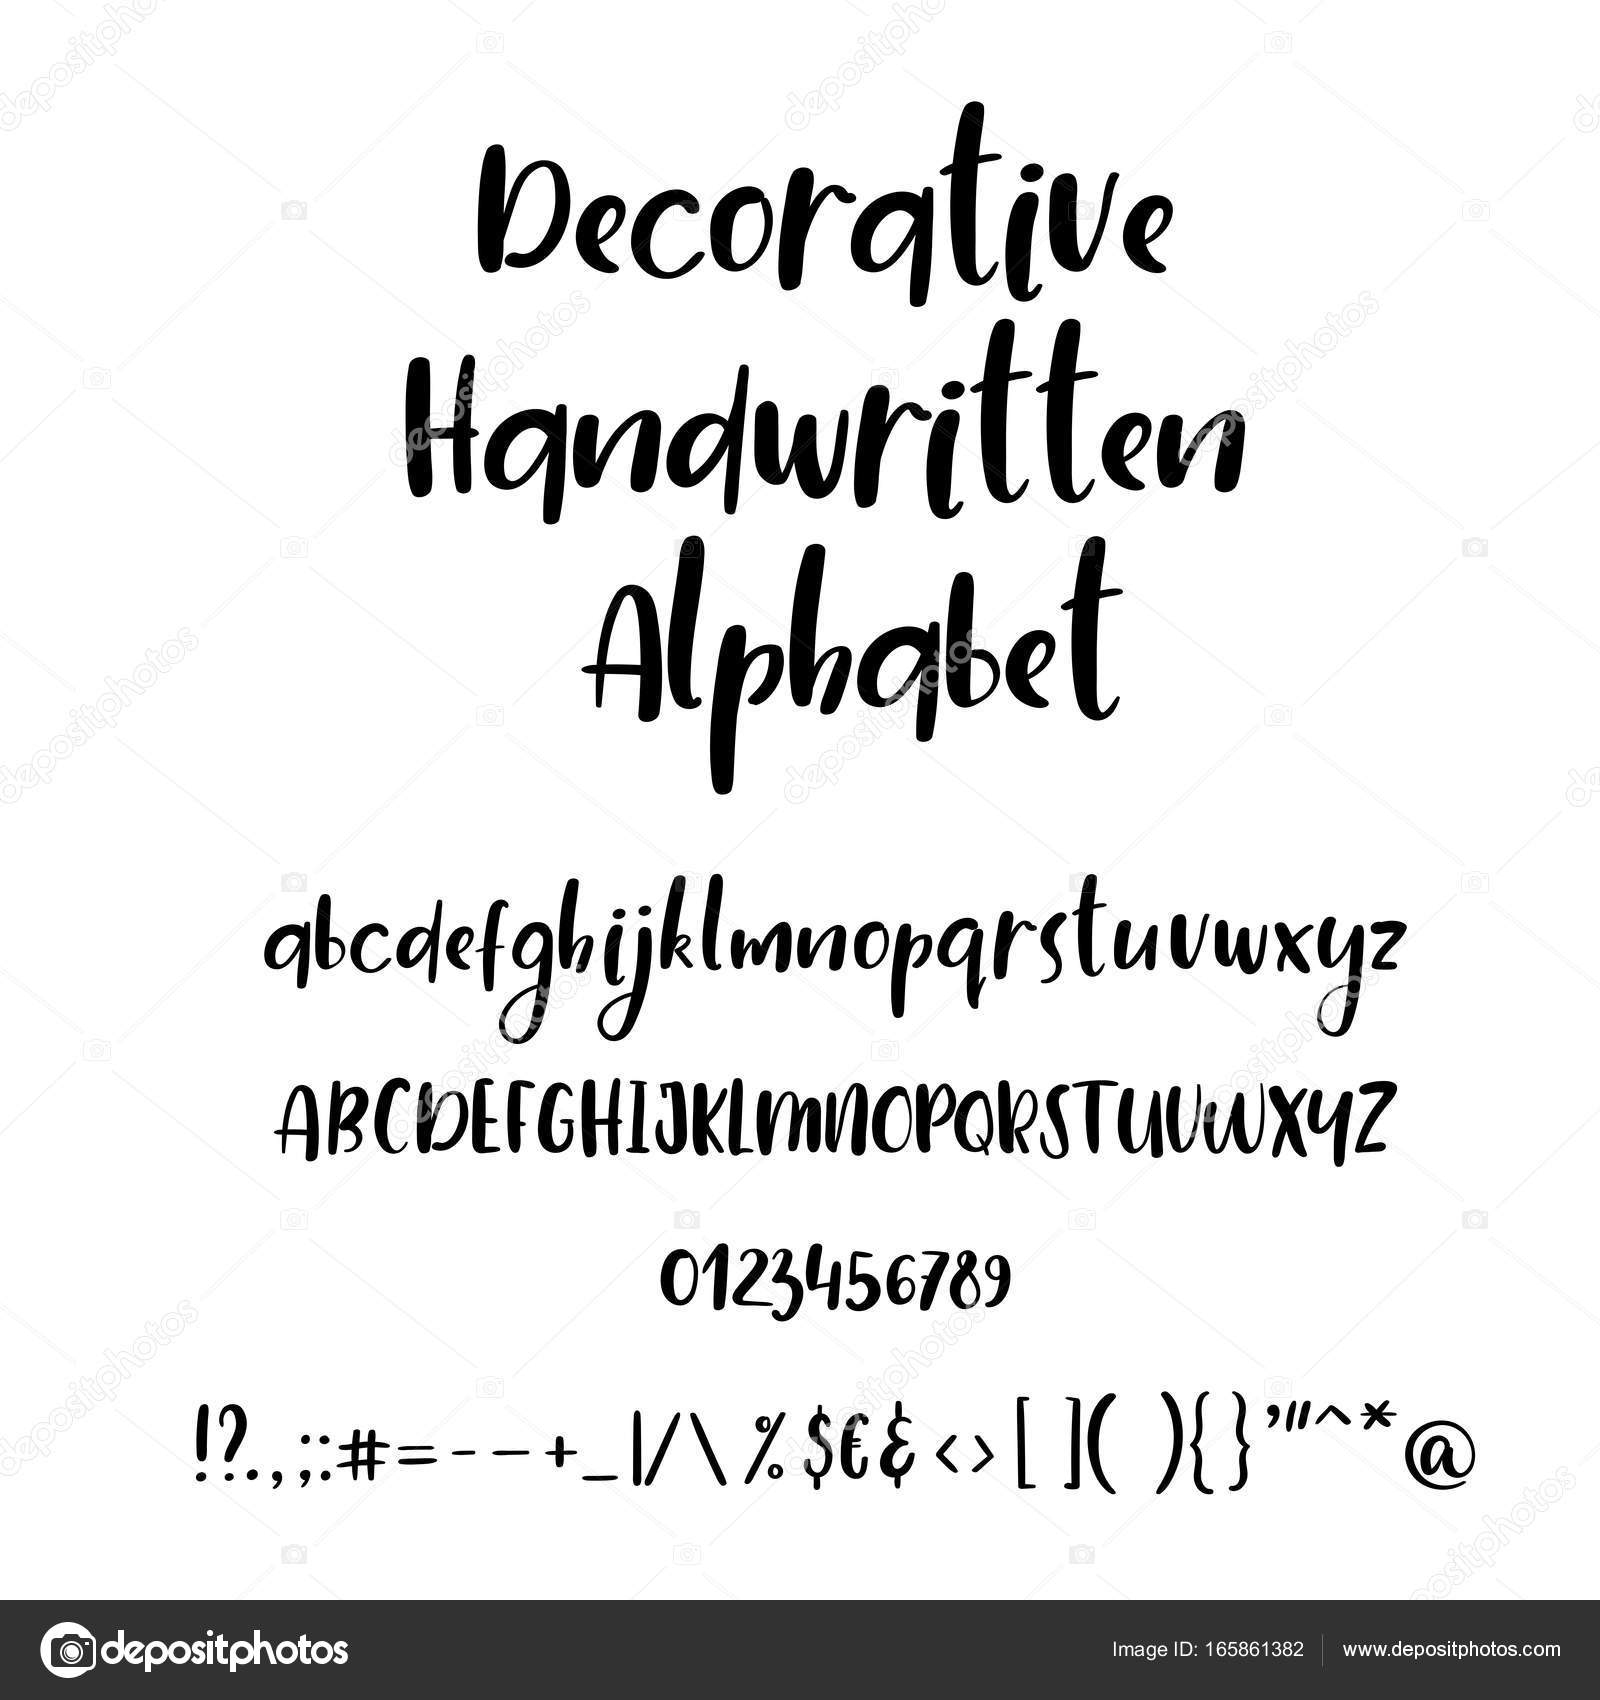 Calligraphic Alphabet Handwritten Brush Font Uppercase Lowercase Numbers Wedding Calligraphy